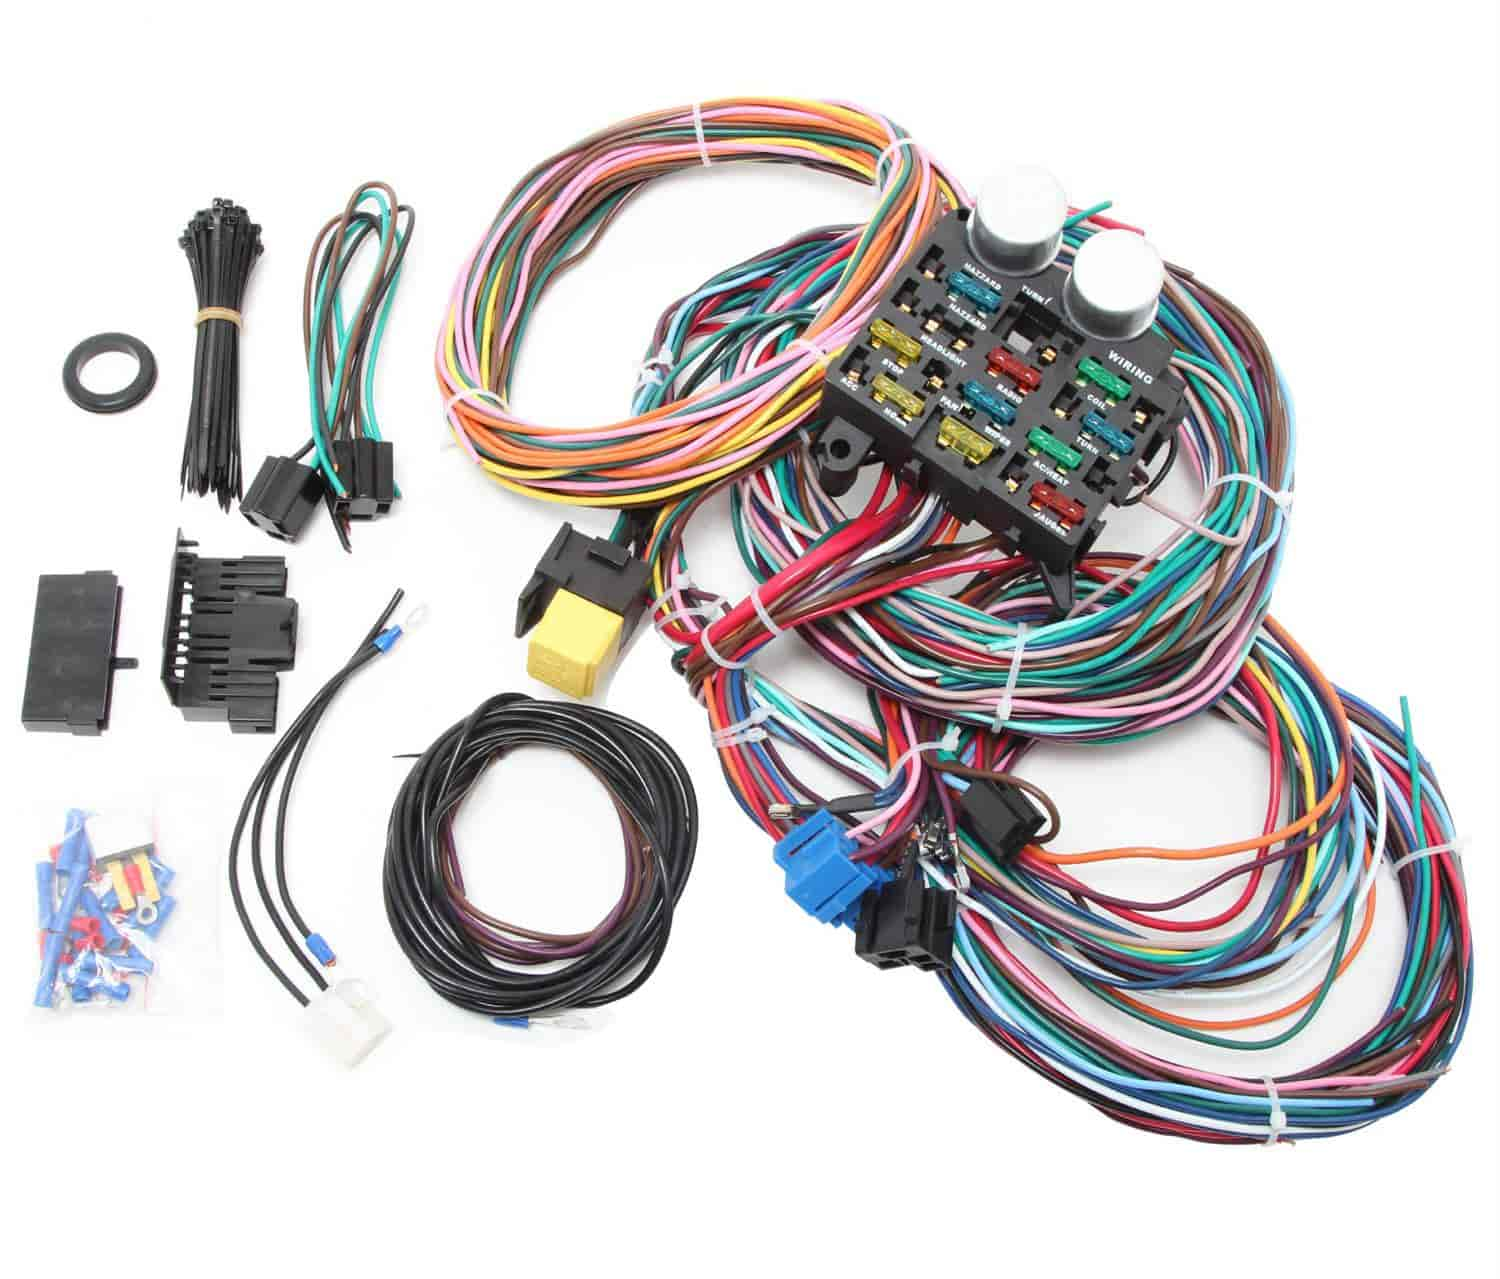 707 r1002x rpc r1002x universal 12 circuit wire harness kit jegs jegs universal wiring harness at soozxer.org